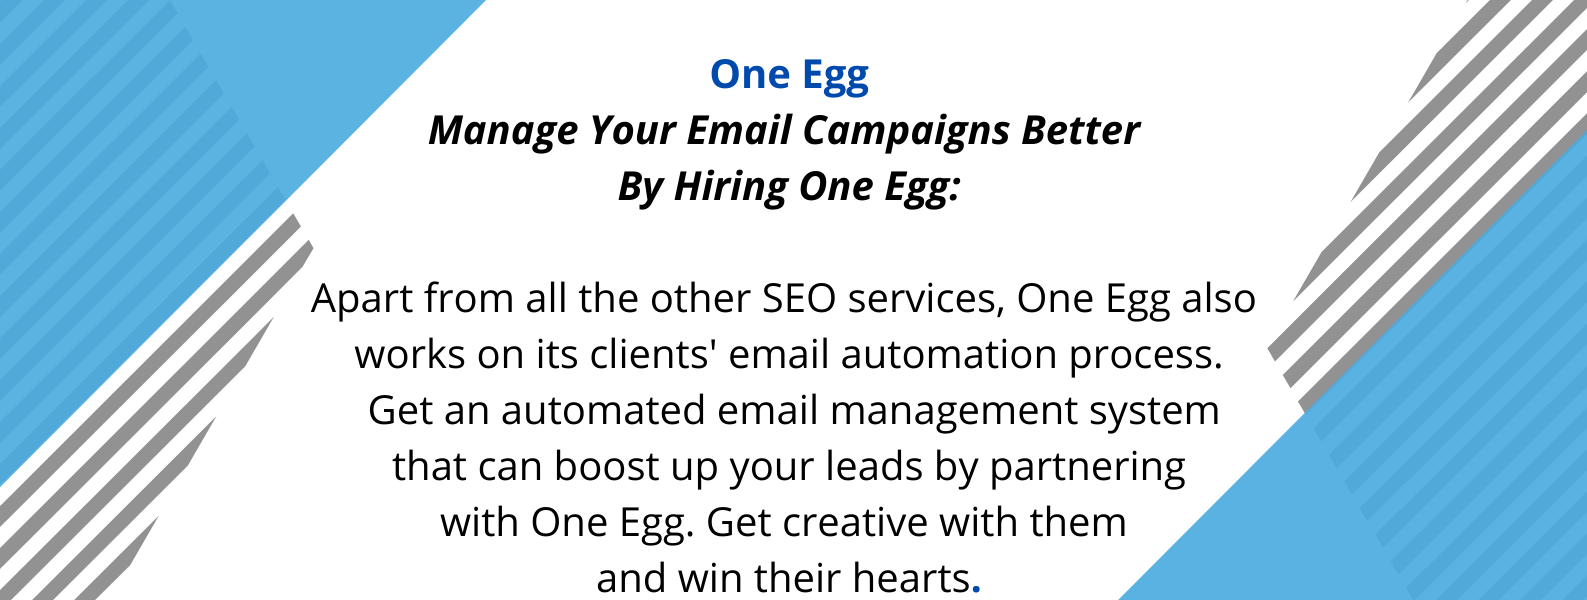 UNique selling proposition of one egg - a digital marketing agency.